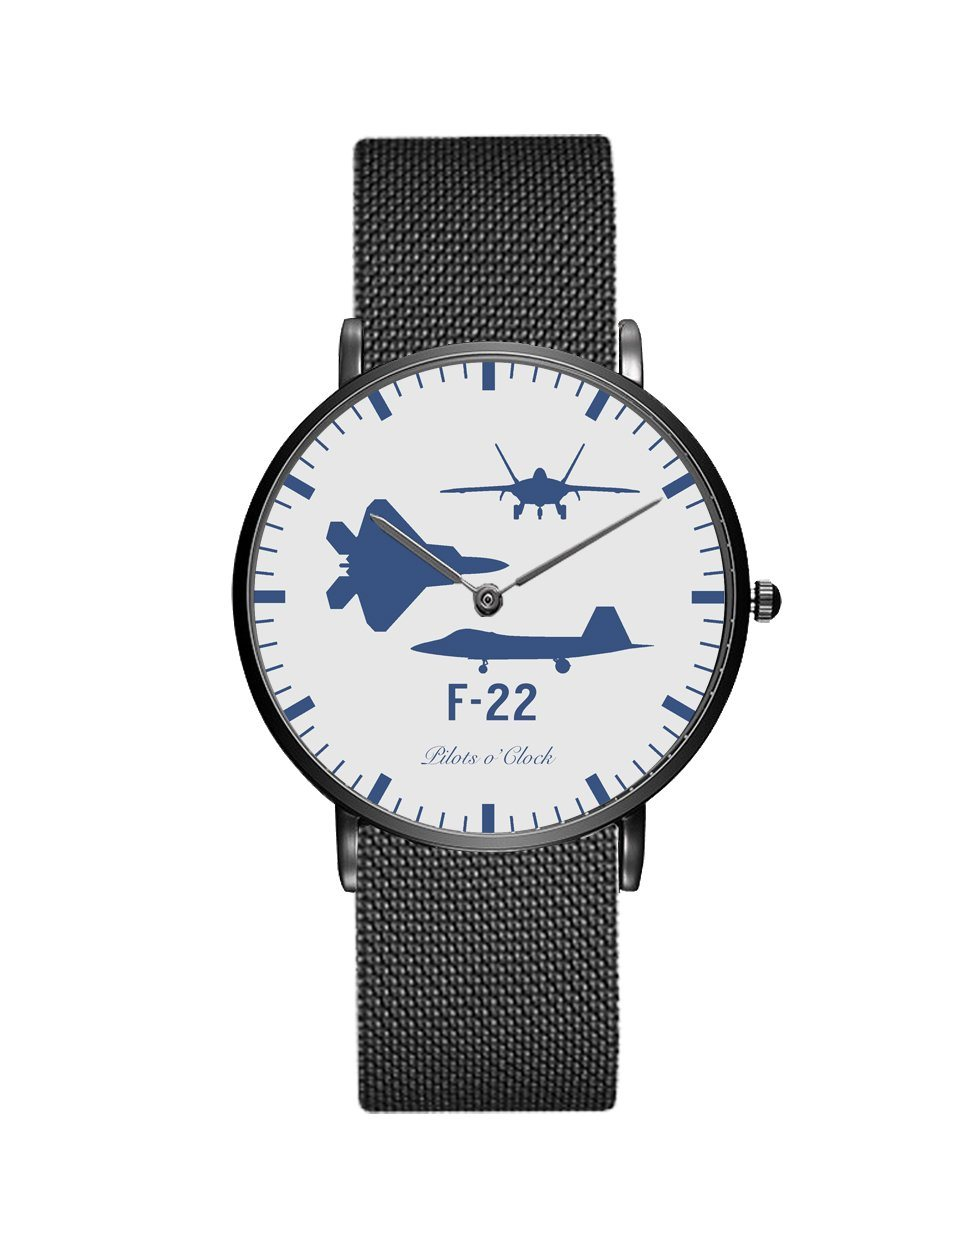 F22 Raptor (Special) Stainless Steel Strap Watches Pilot Eyes Store Black & Stainless Steel Strap